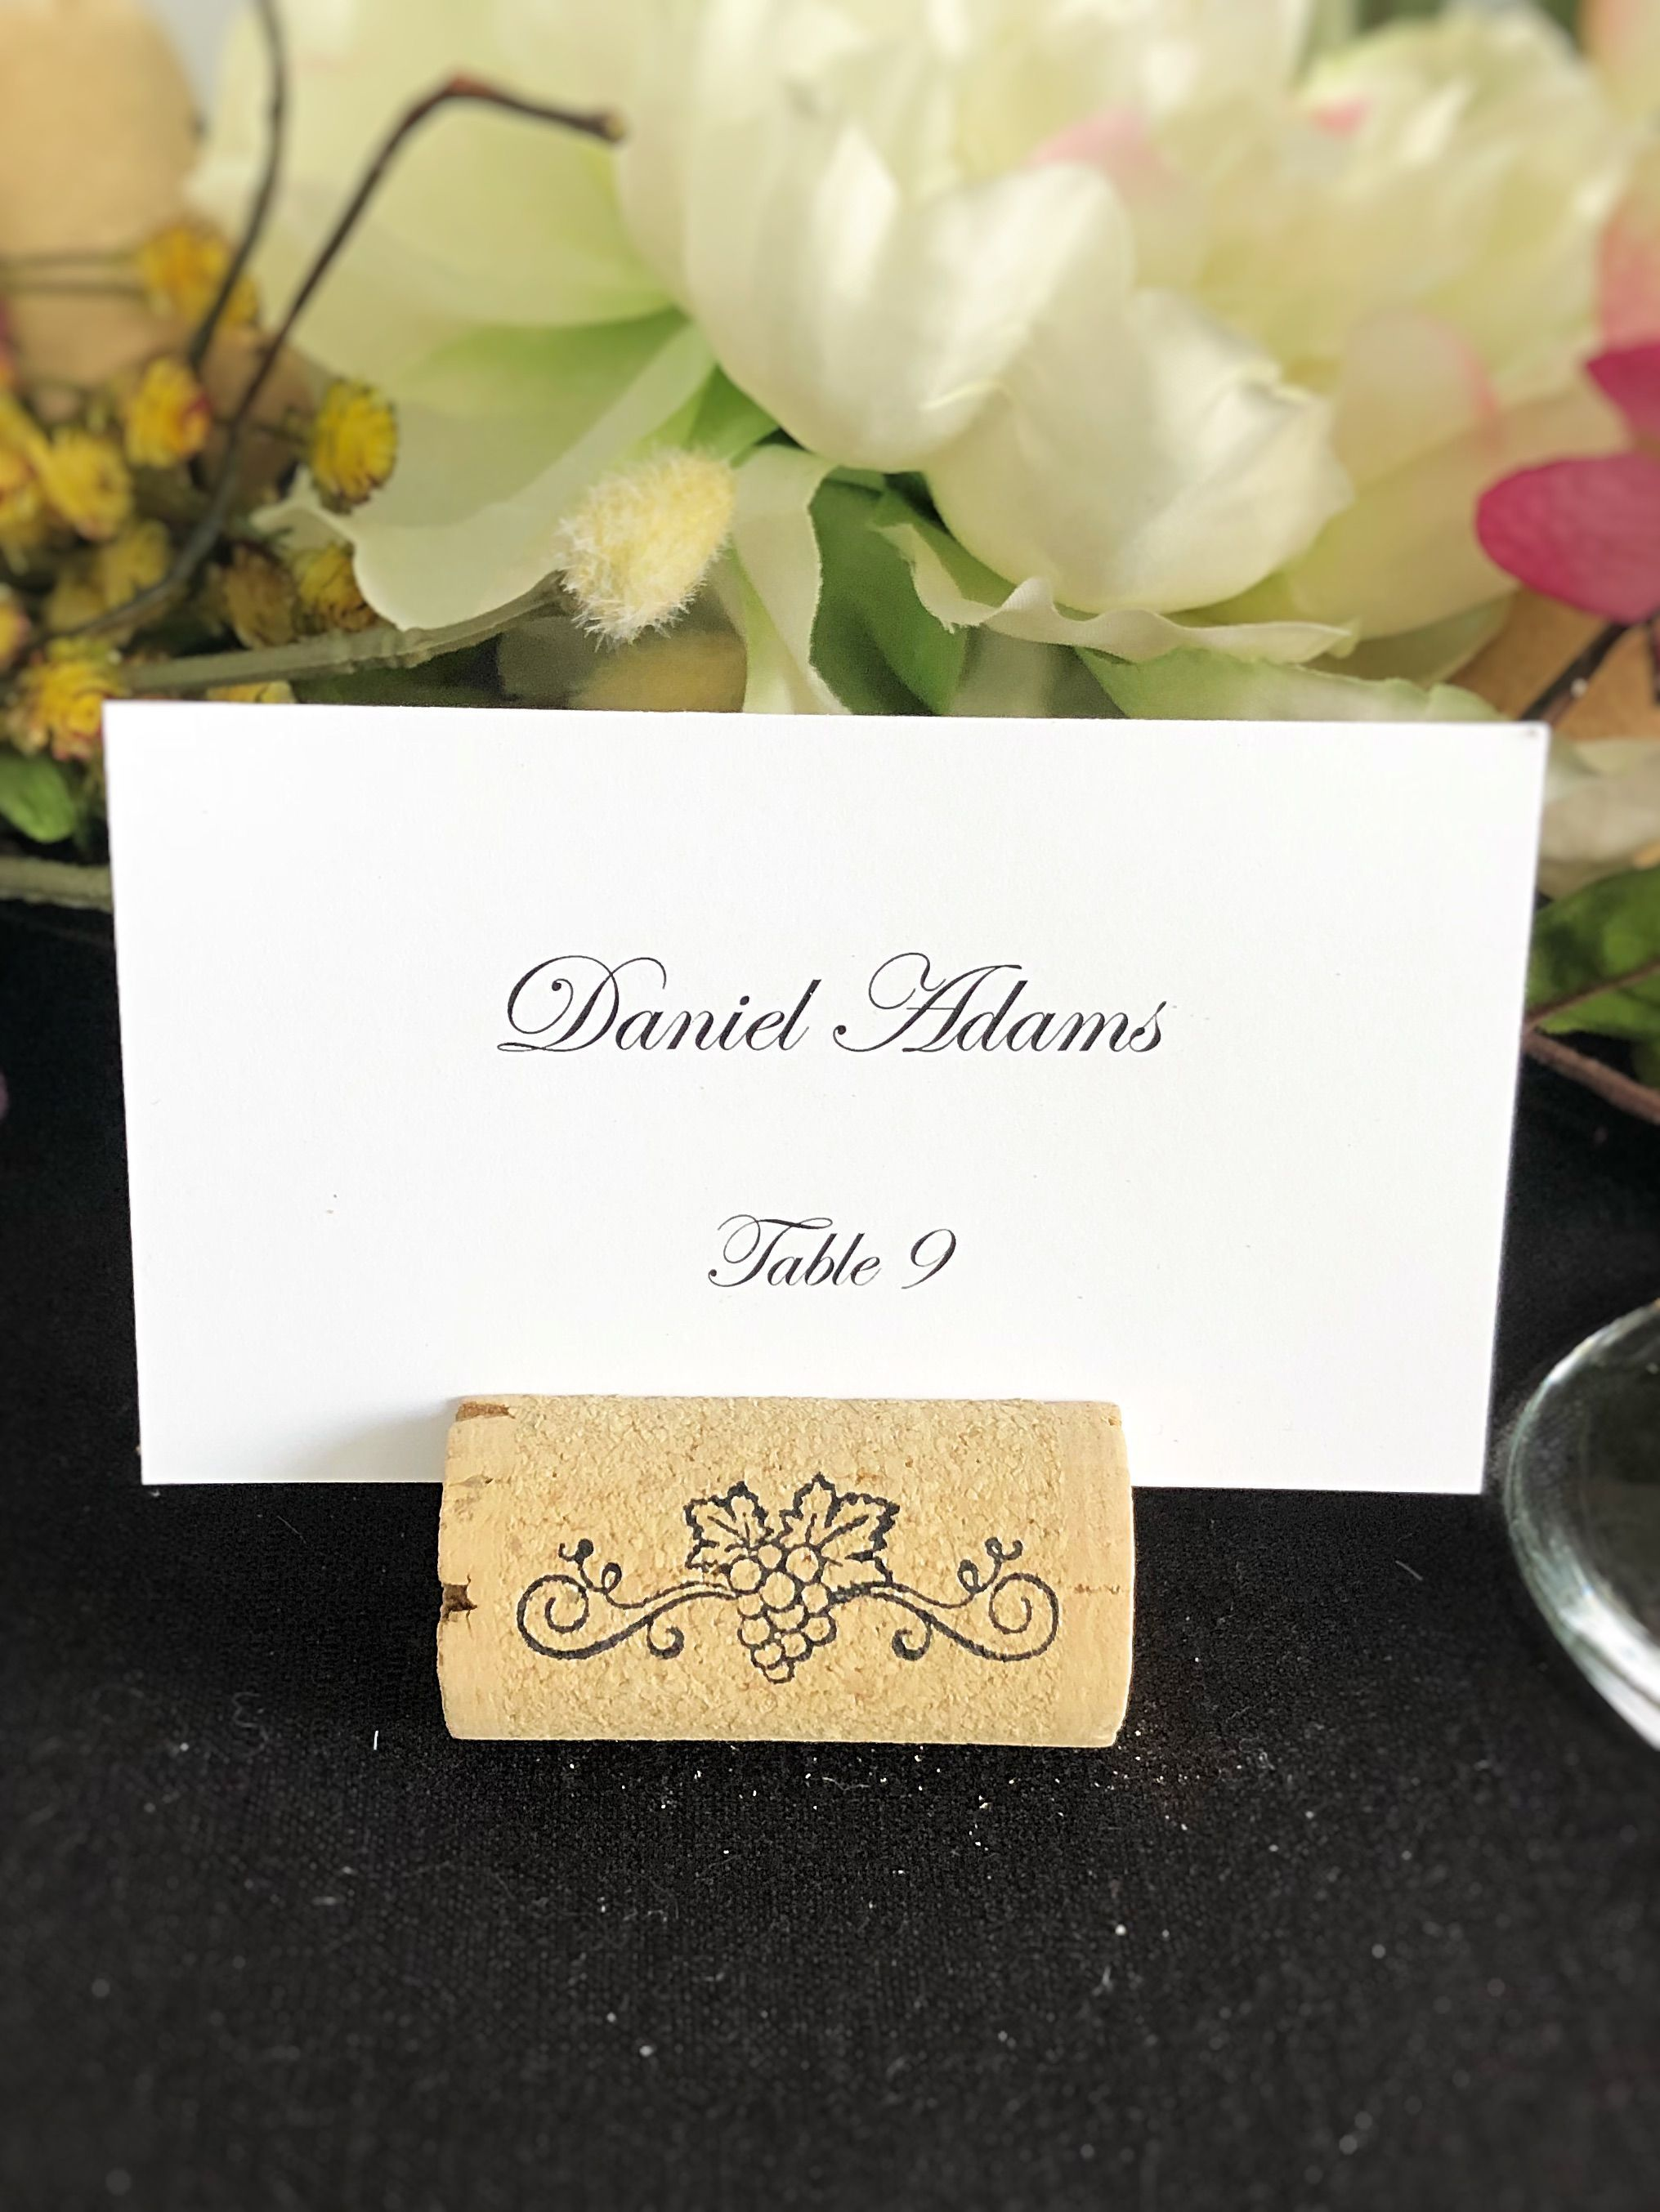 Magnetic Wine Cork Place Card Holders - Swirl Grapes   Place card ...